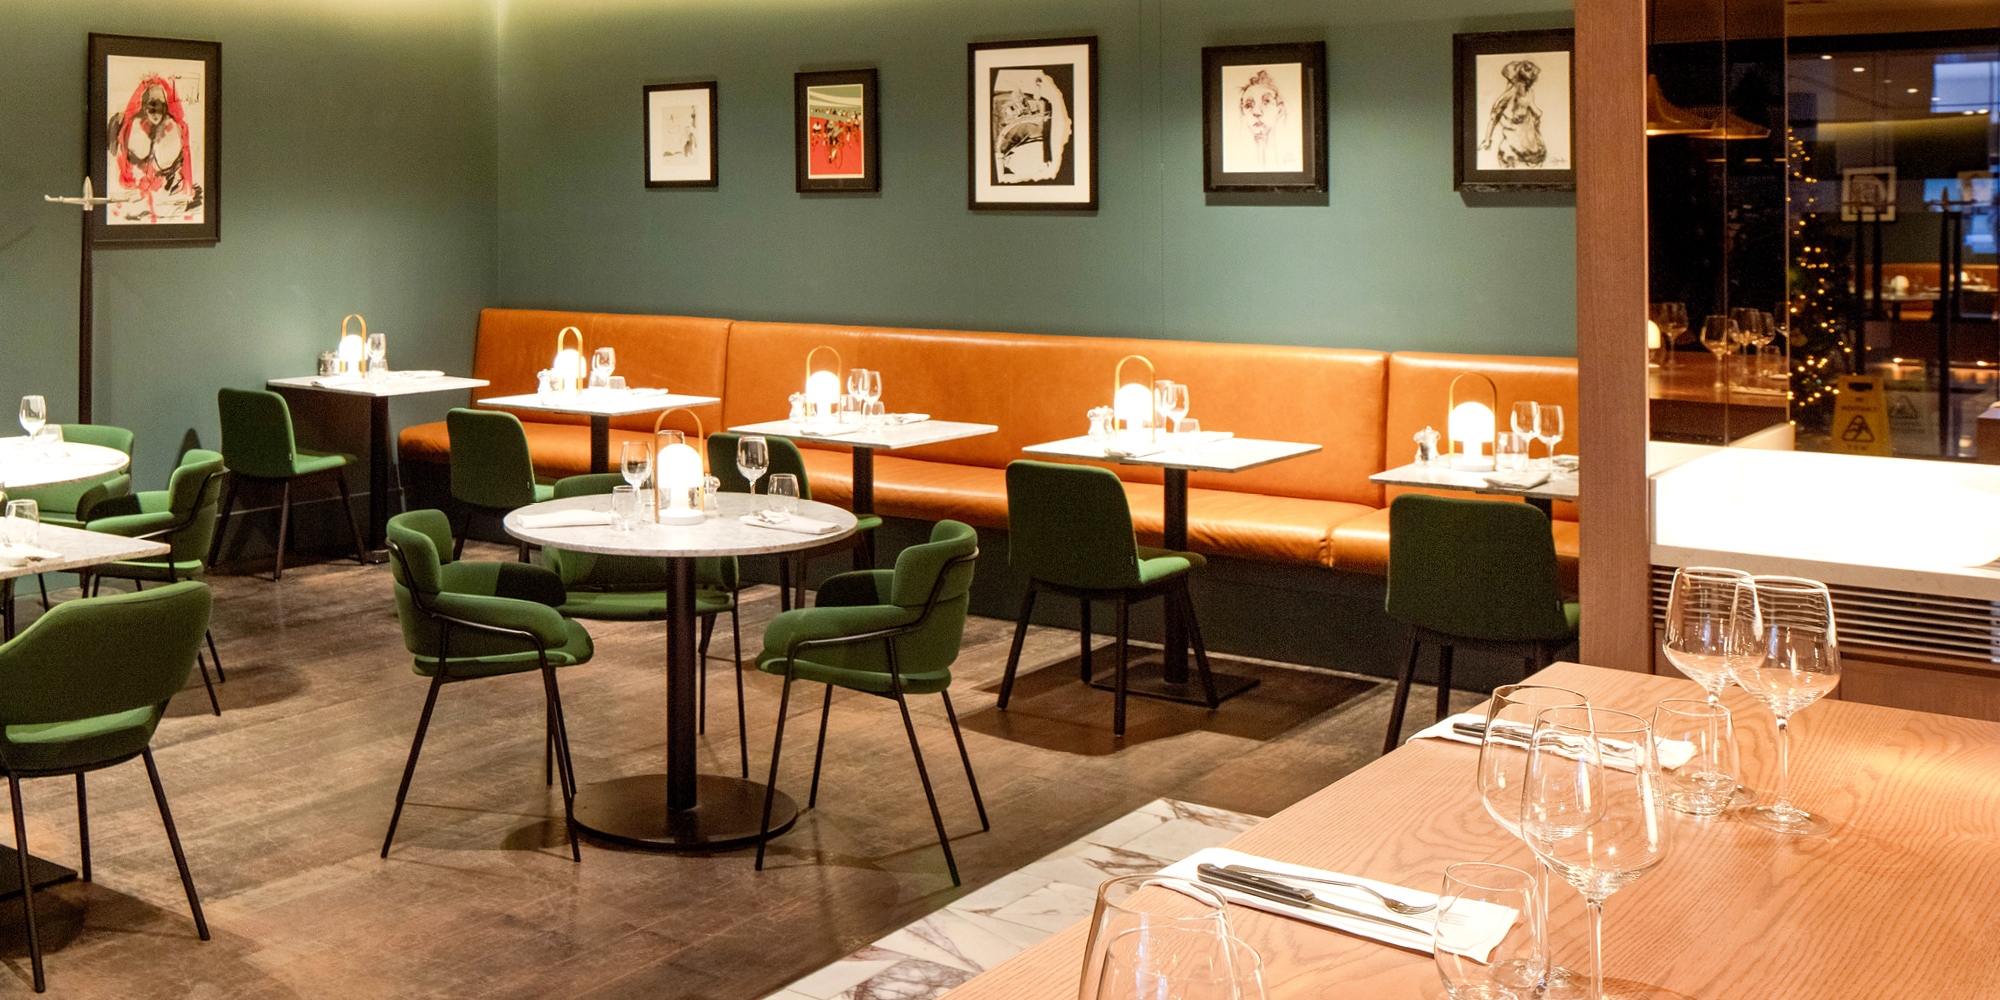 The Grahamston Kitchen I Restaurant seating area including booths and circular seating tables